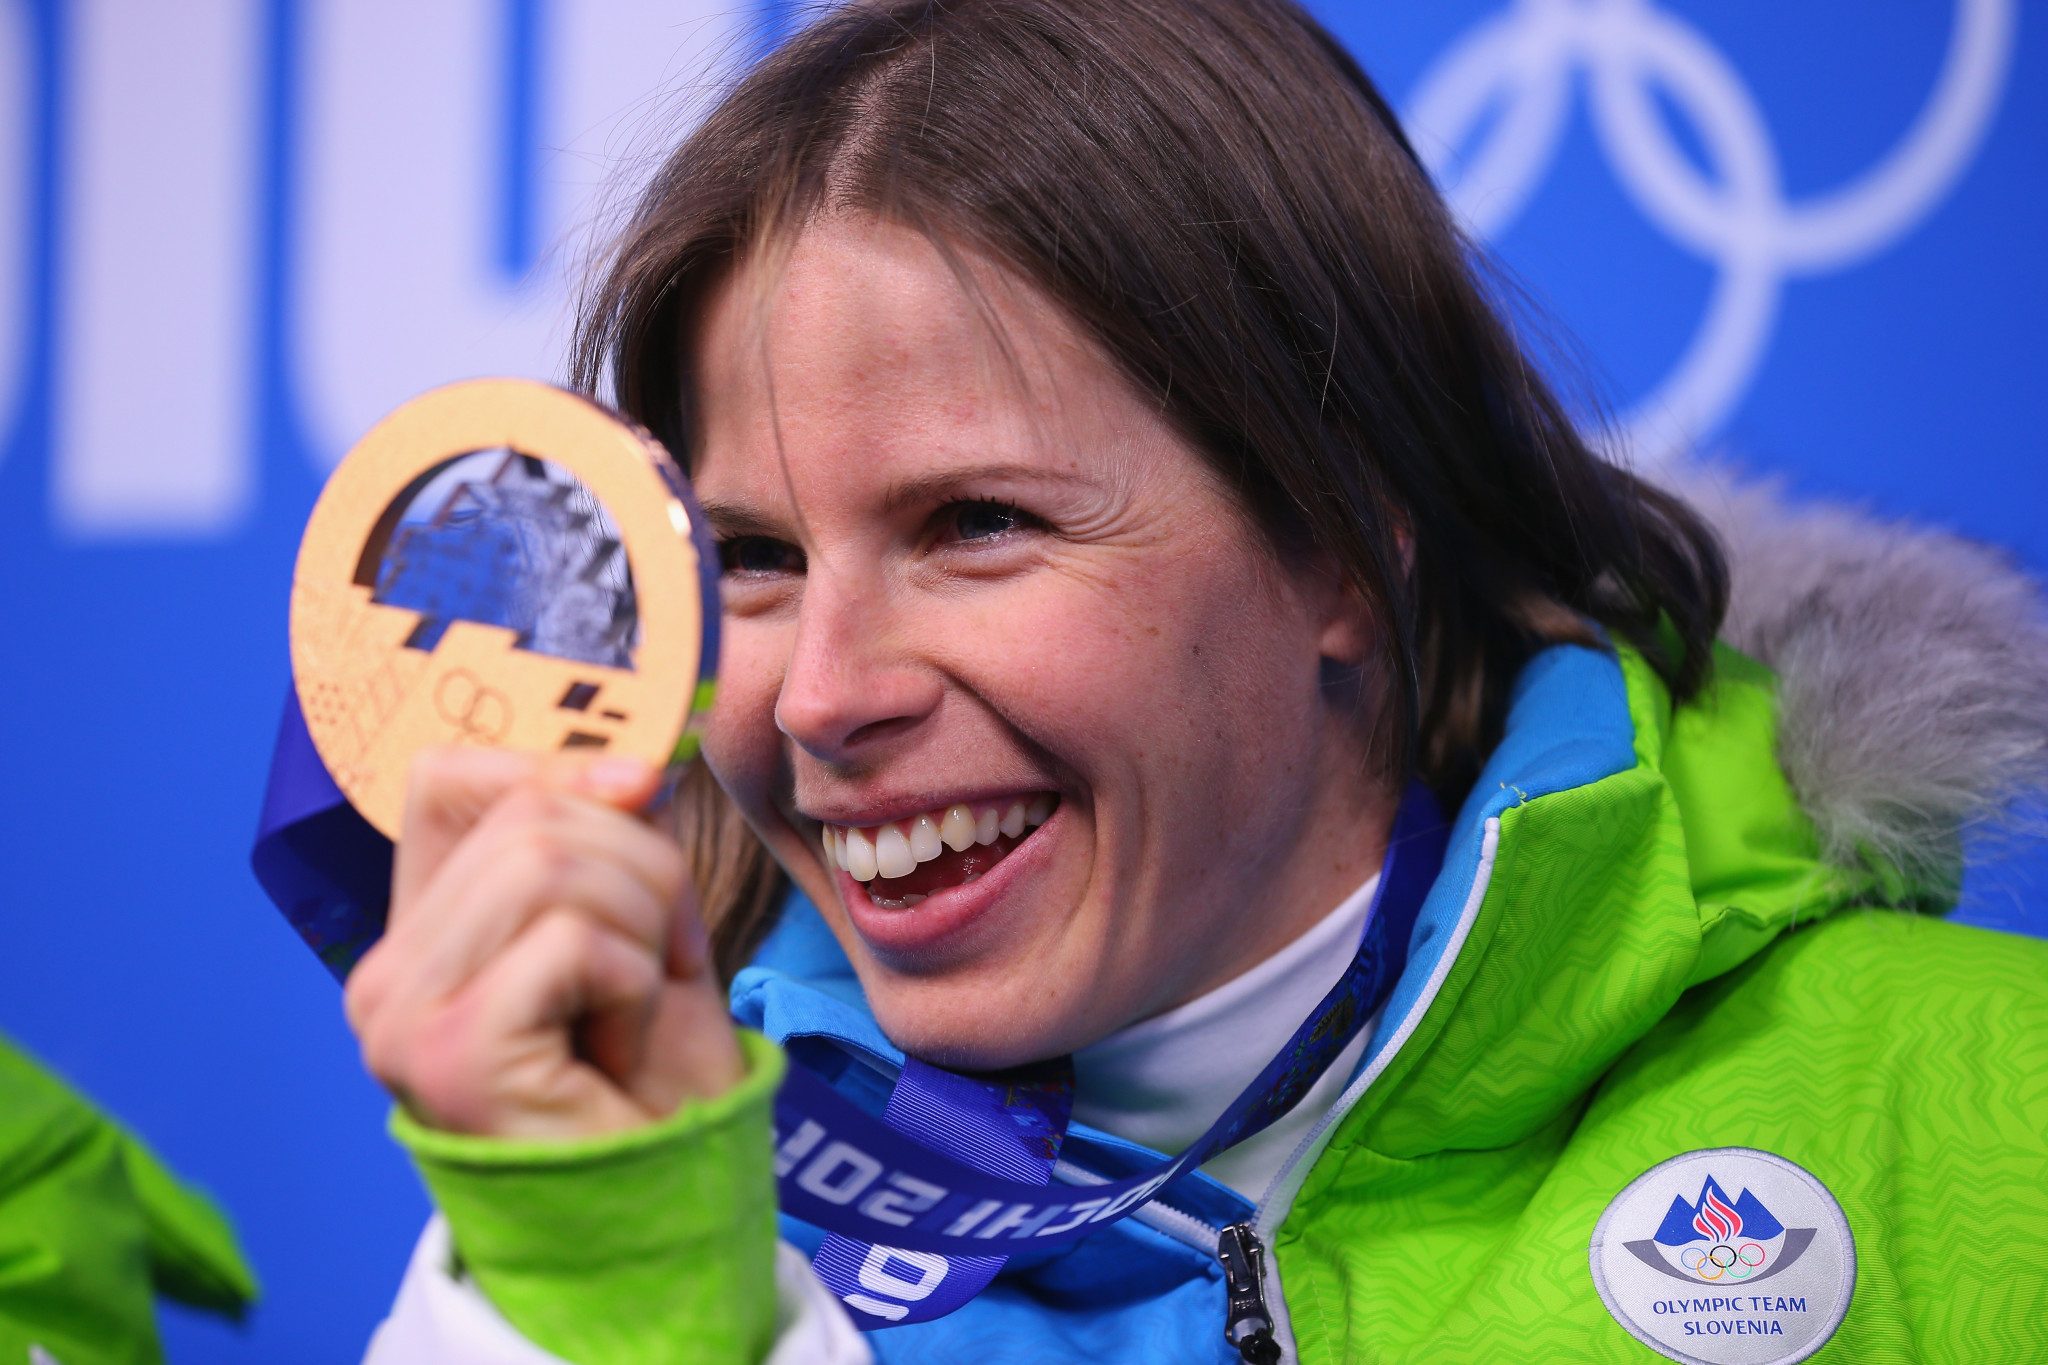 Winter Olympic medallist Fabjan retires from cross-country skiing